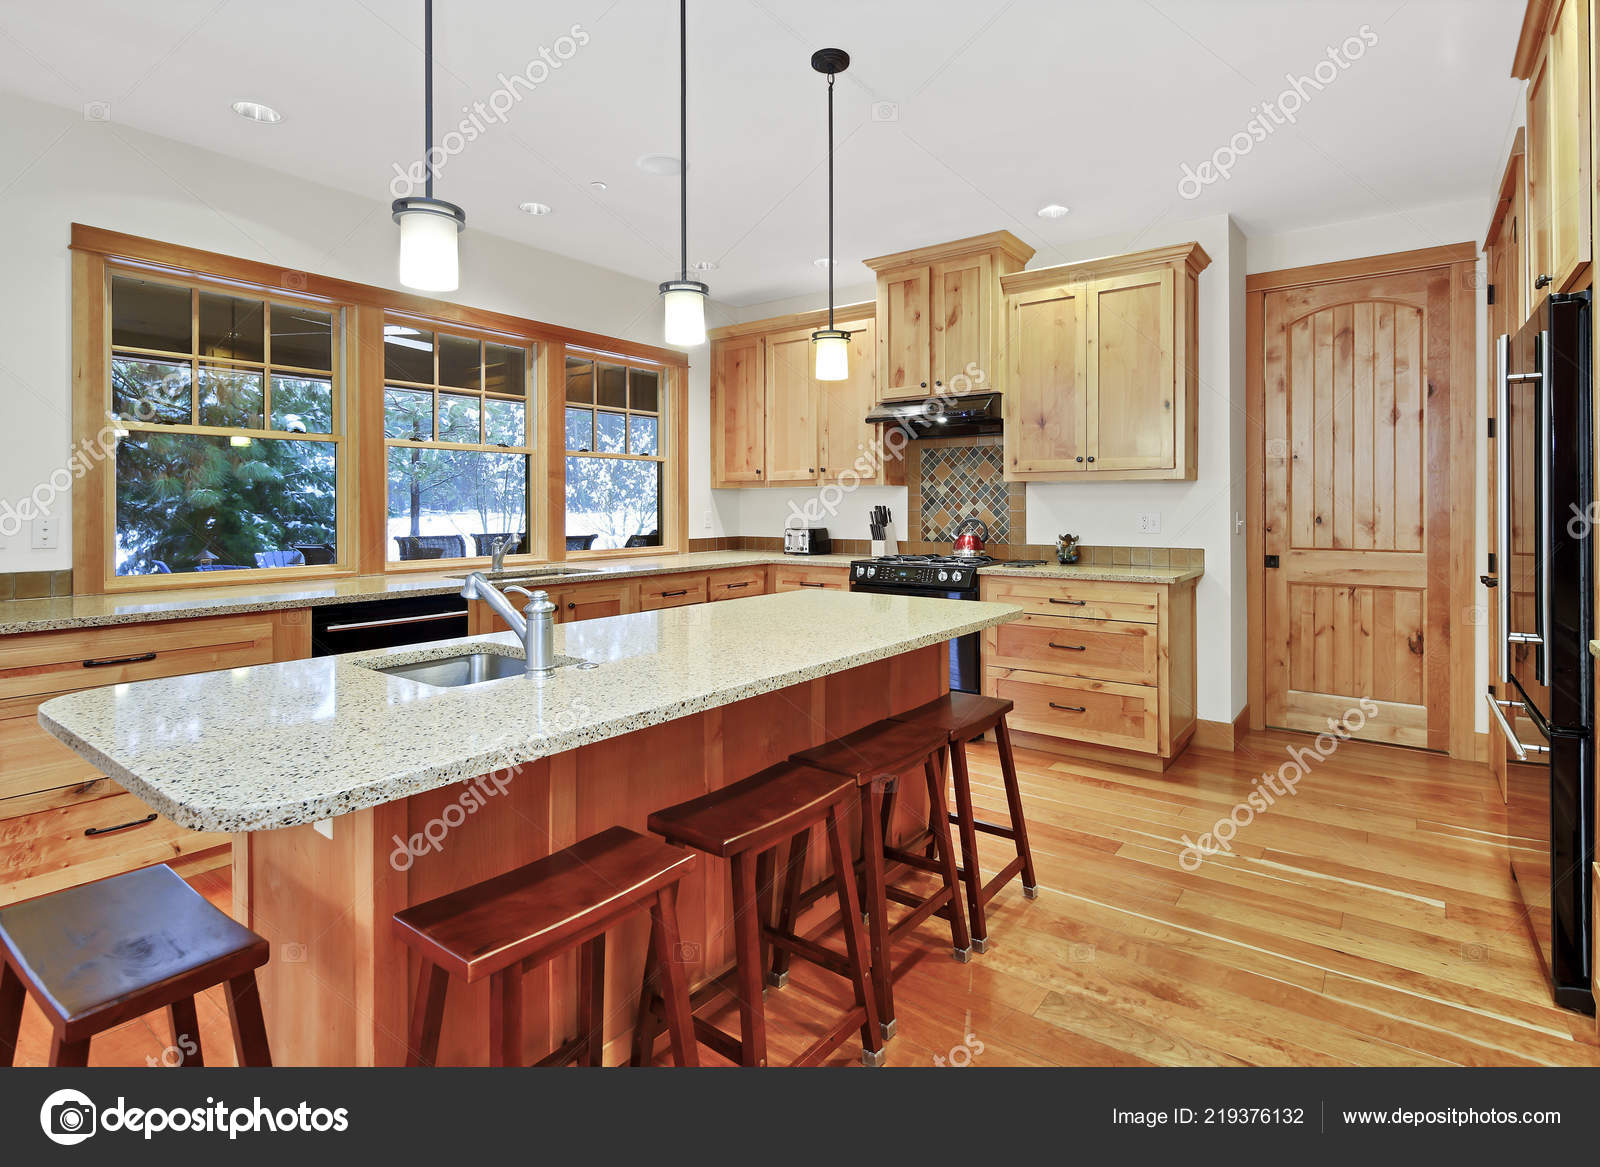 Pictures Granite Countertops With Oak Cabinets Beautiful Kitchen Light Wood Cabinets Granite Counter Tops Large Center Stock Photo C Iriana88w 219376132